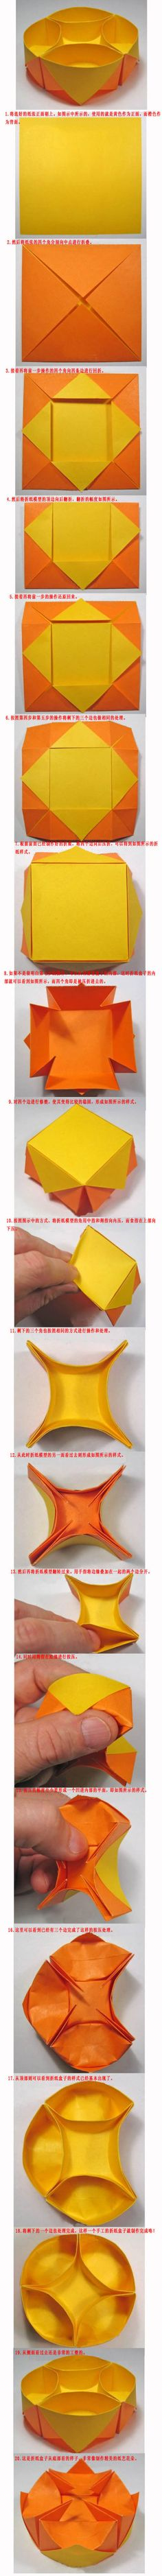 """written directions for this origami """"snack"""" bowl, but it's pretty easy to figure out. Use at least a sheet of 8 X 11 inch paper Diy Origami, Origami And Kirigami, Paper Crafts Origami, Origami Tutorial, Diy Paper, Oragami, Basic Origami, Origami Frog, Modular Origami"""